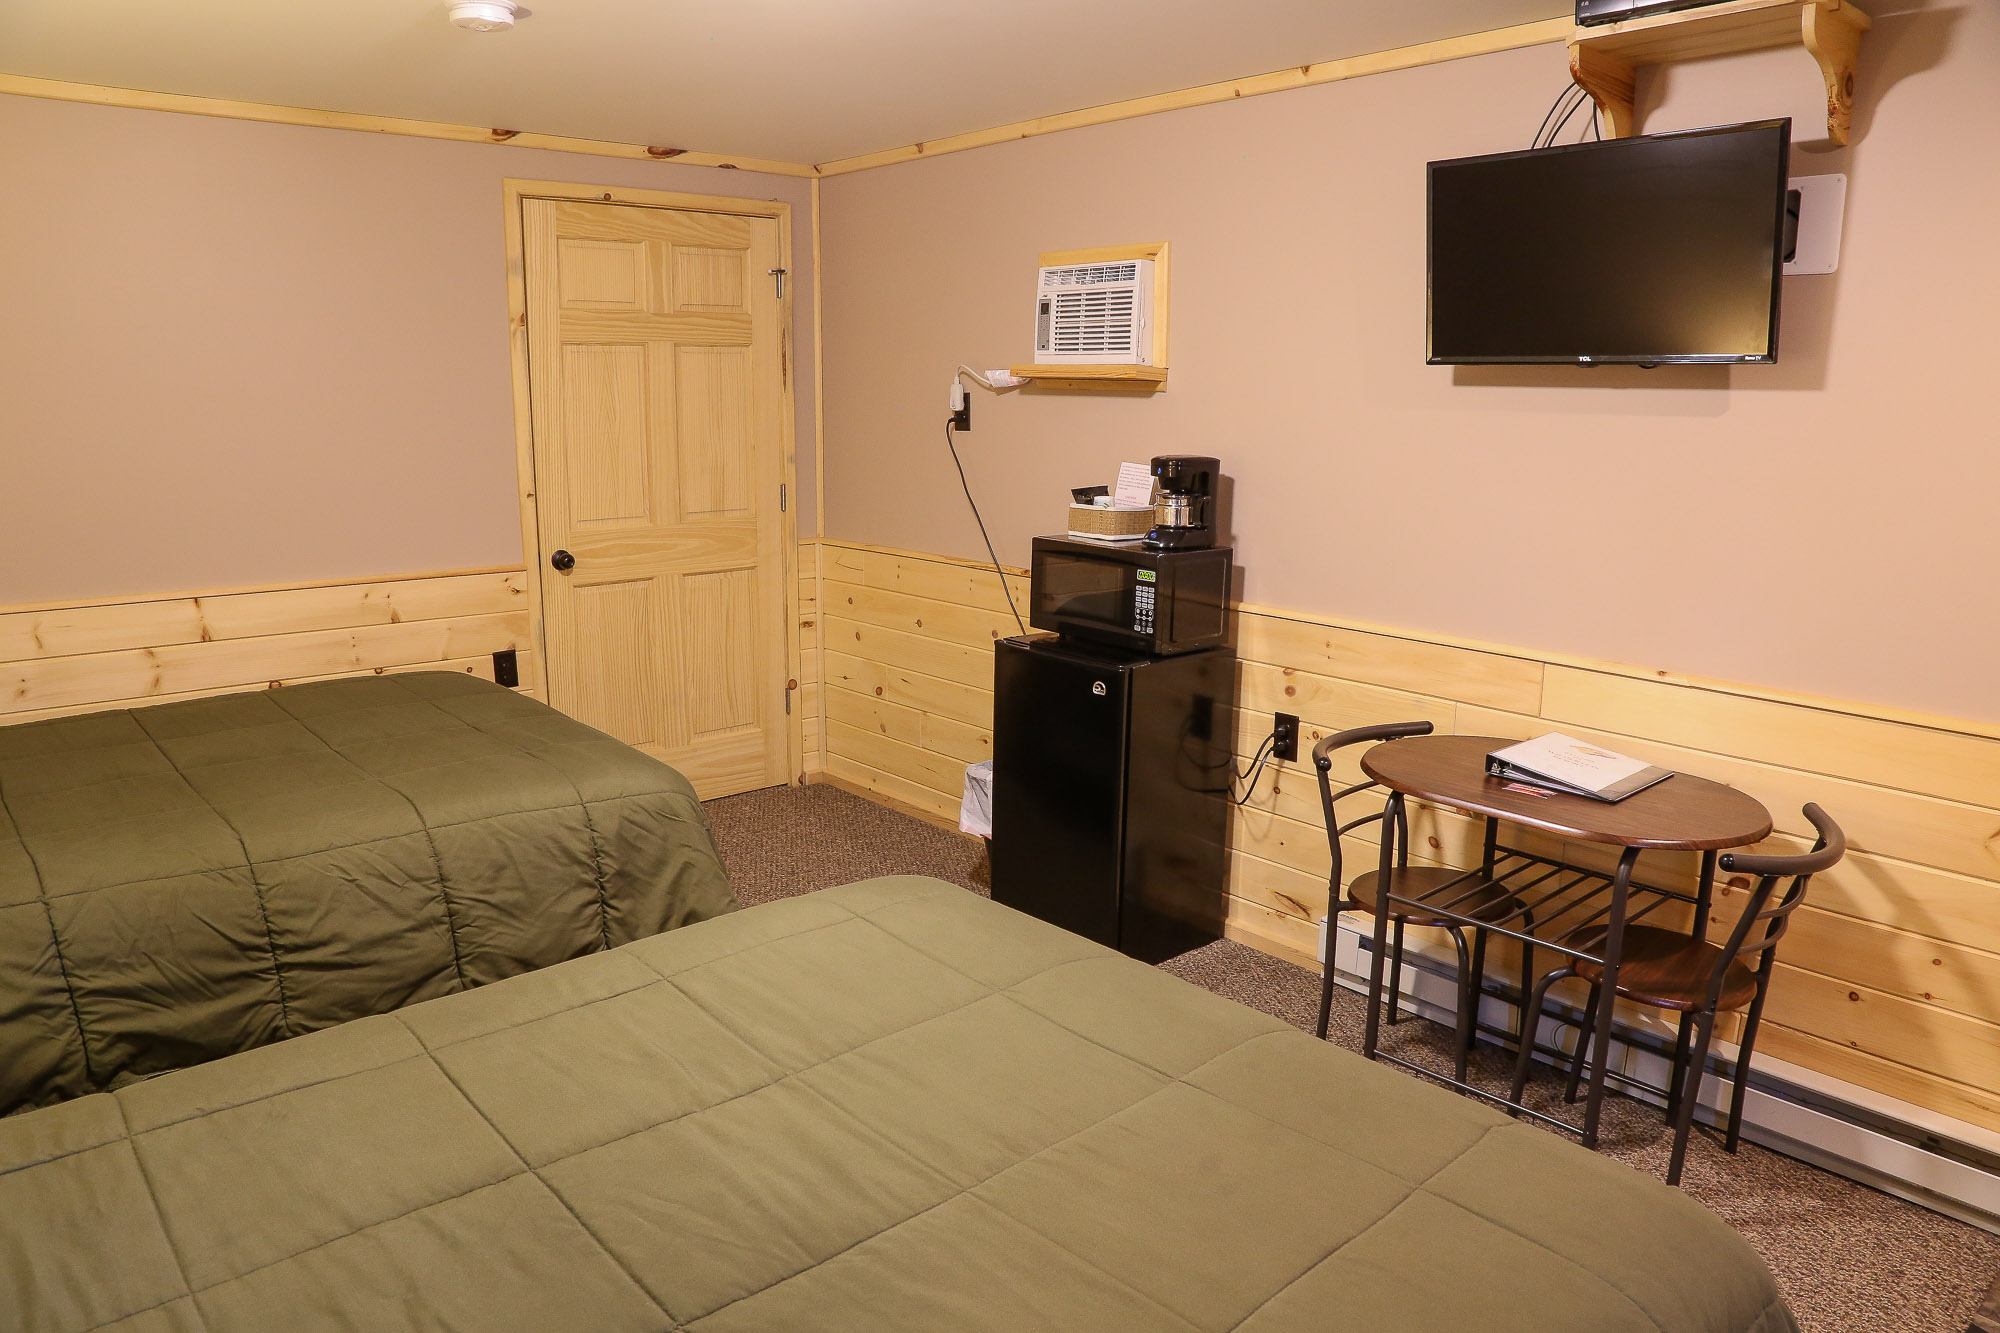 Photo of Motel D Lodging at the Wilderness Resort in Lac La Belle Michigan